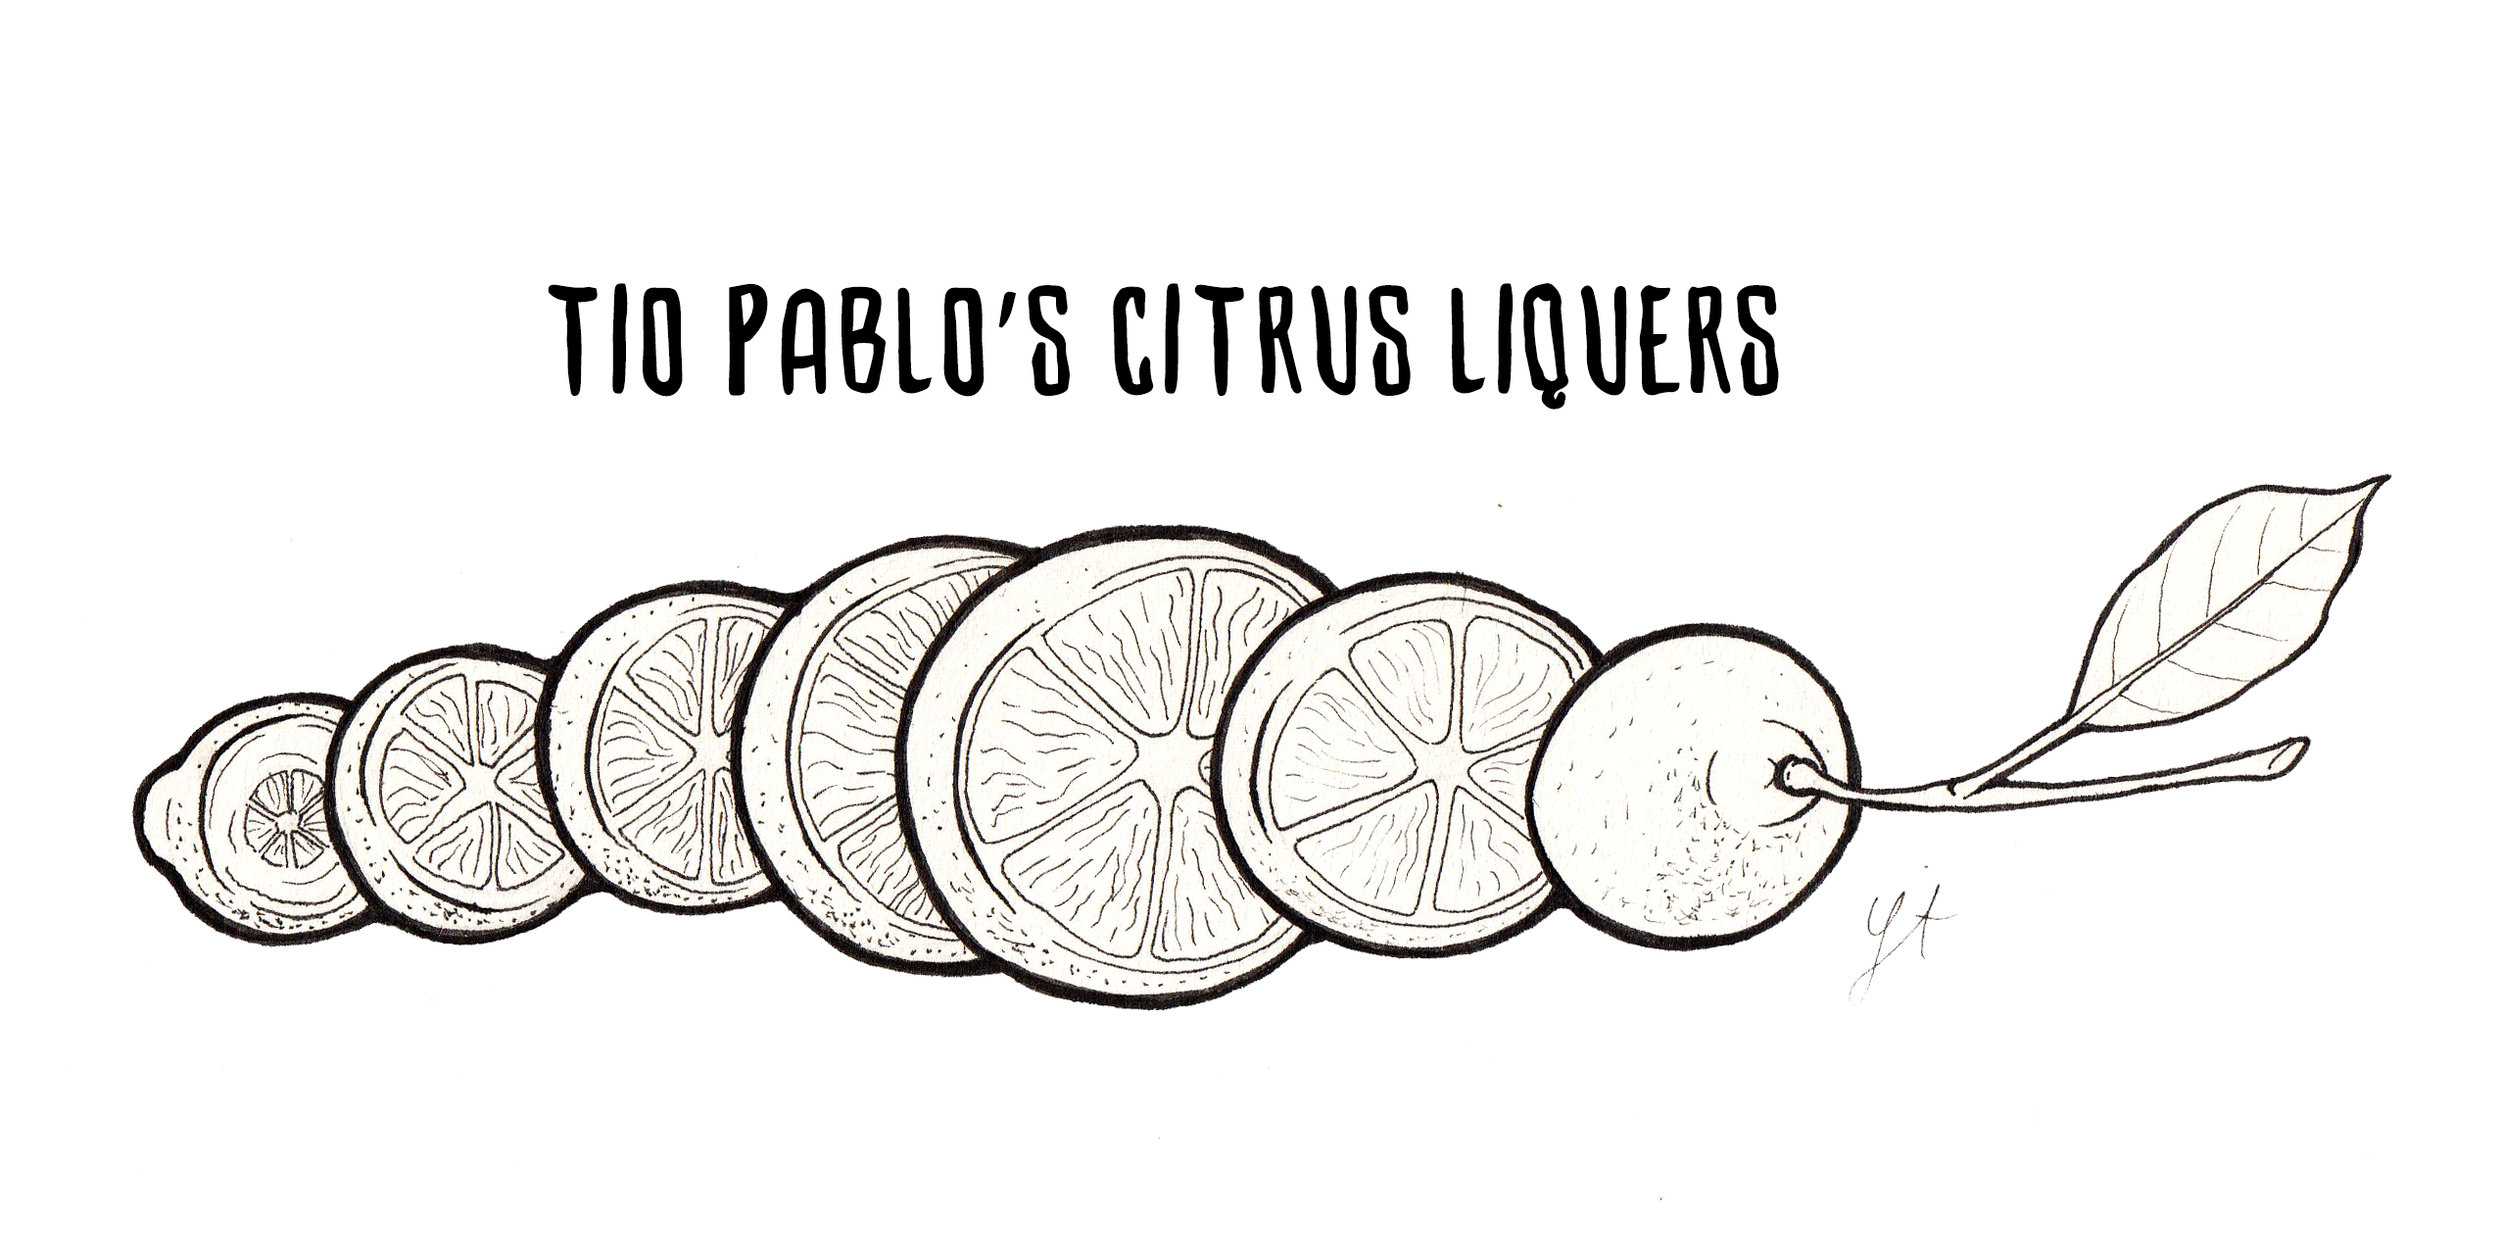 Tio Pablo's Label Design